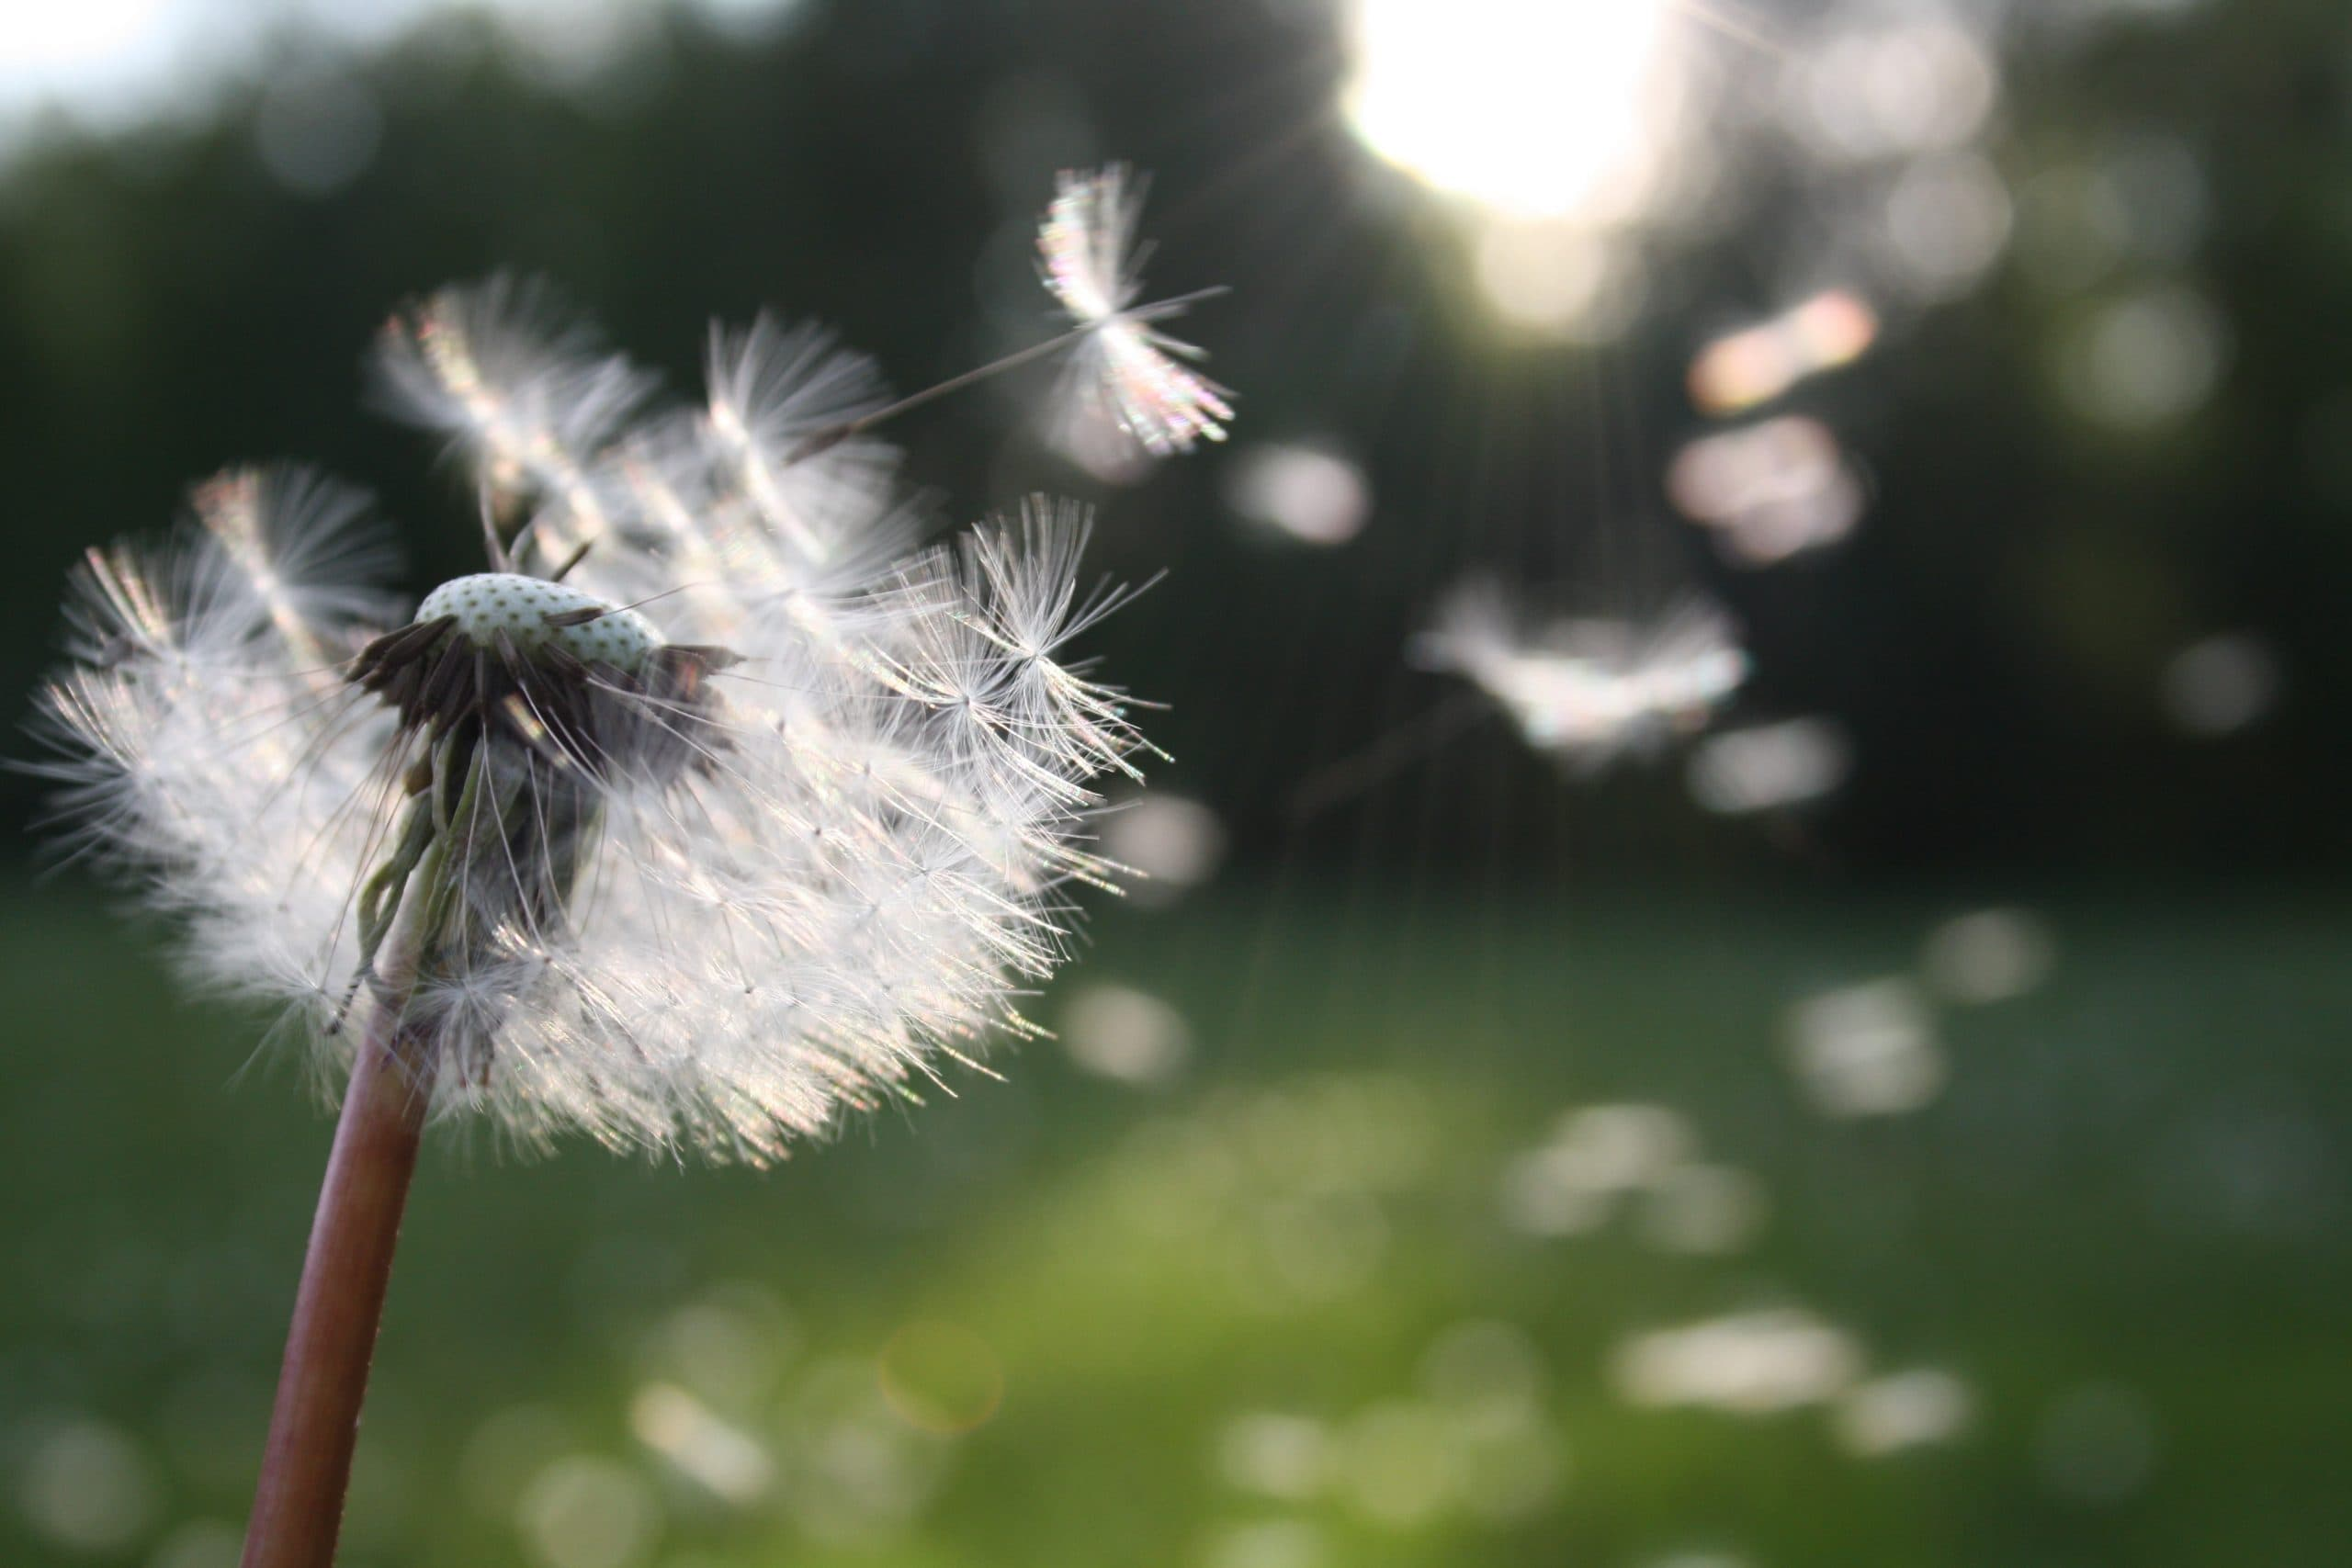 Dandelion clock blowing away in the wind